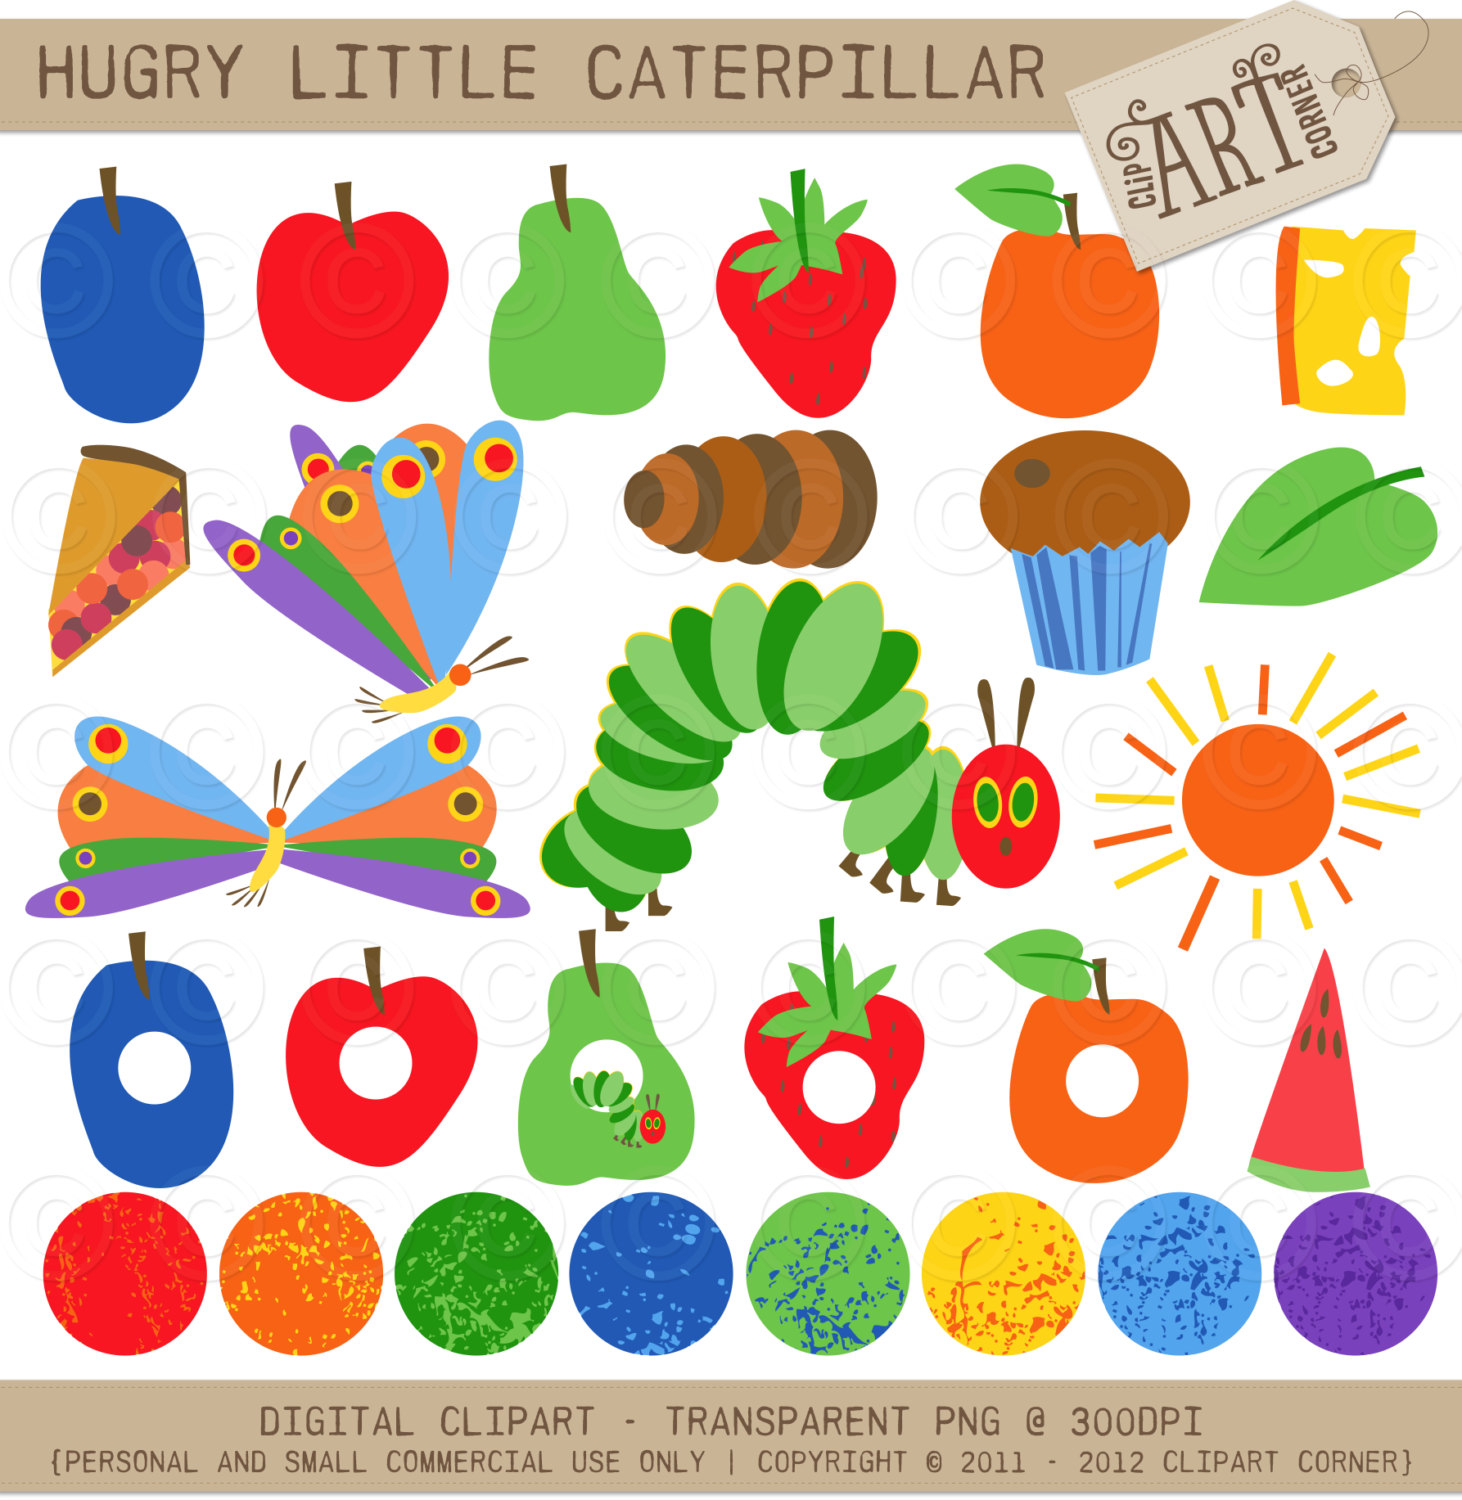 71 Very Hungry Caterpillar Clipart